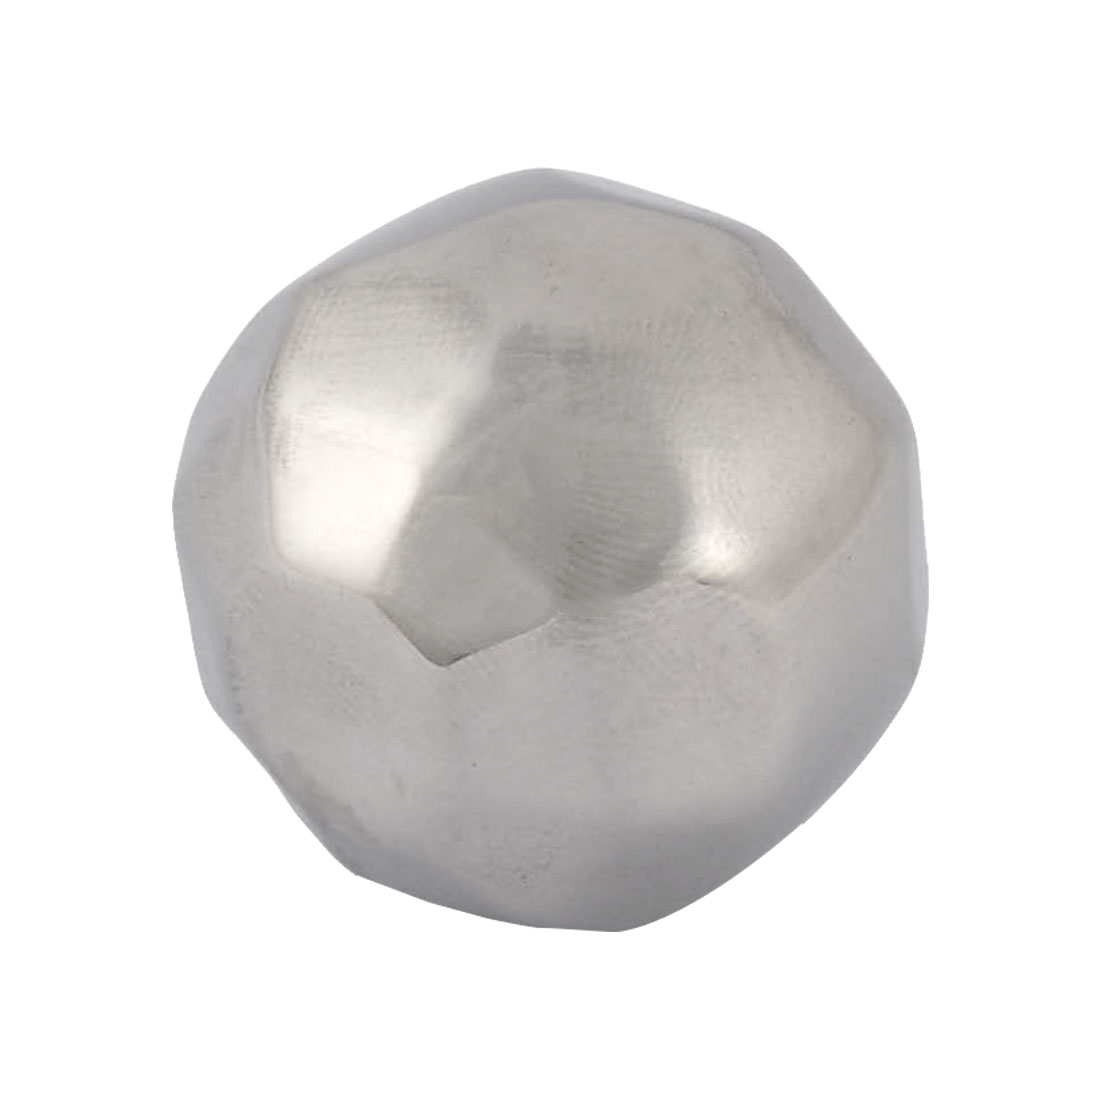 Home Stainless Steel Diamond Ball Shaped Soda Juice Ice Cube Silver Tone 3cm Diameter